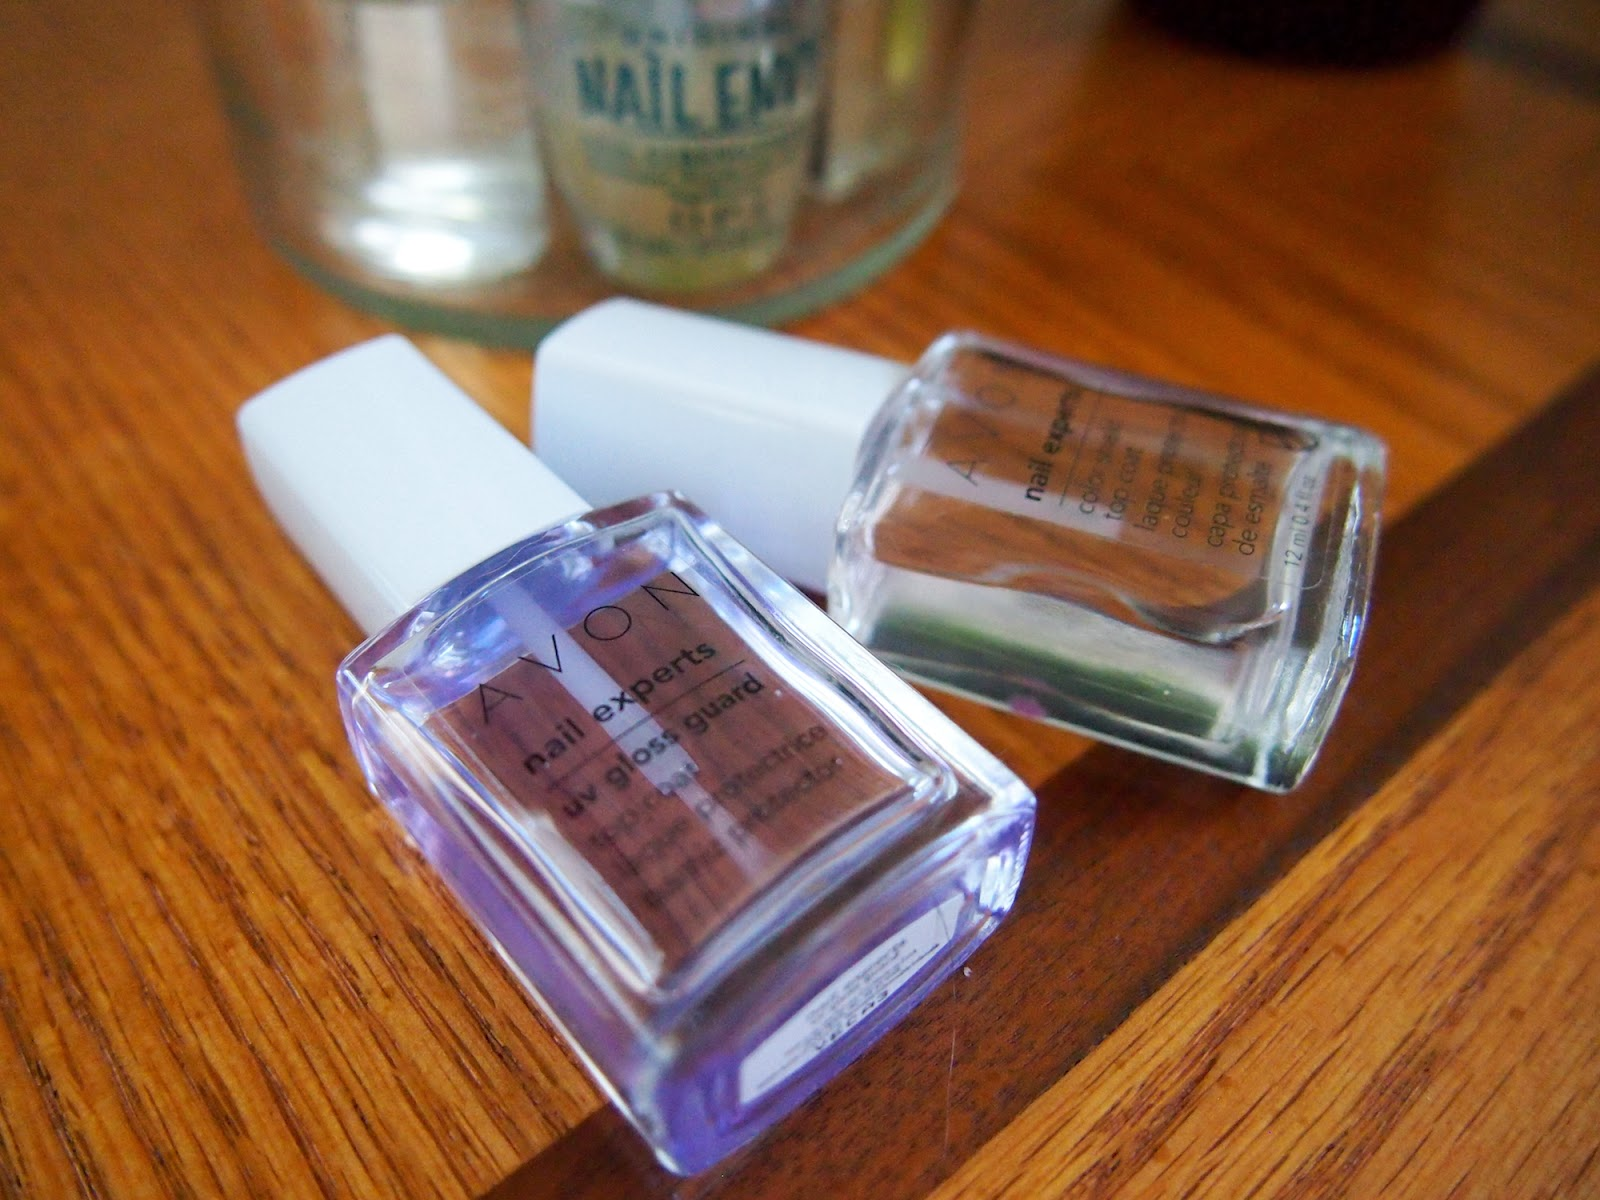 Bedside Nail Essentials Avon OPI Nail Envy Sally Hansen Cuticle